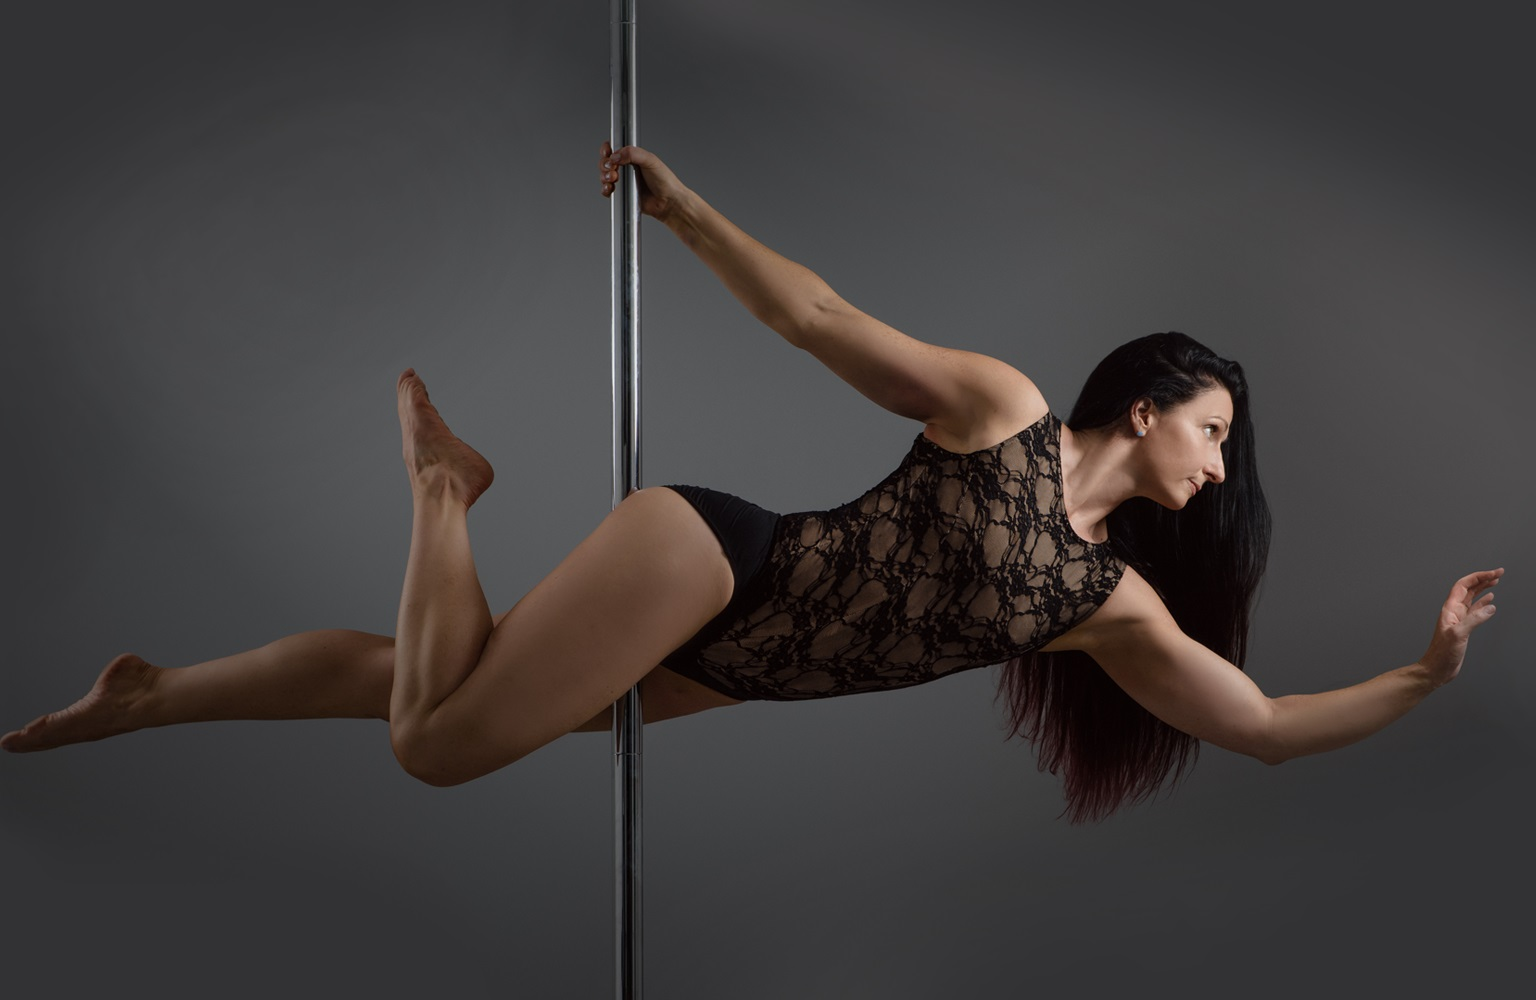 Meet gravity-defying dance instructor Kathy Buller